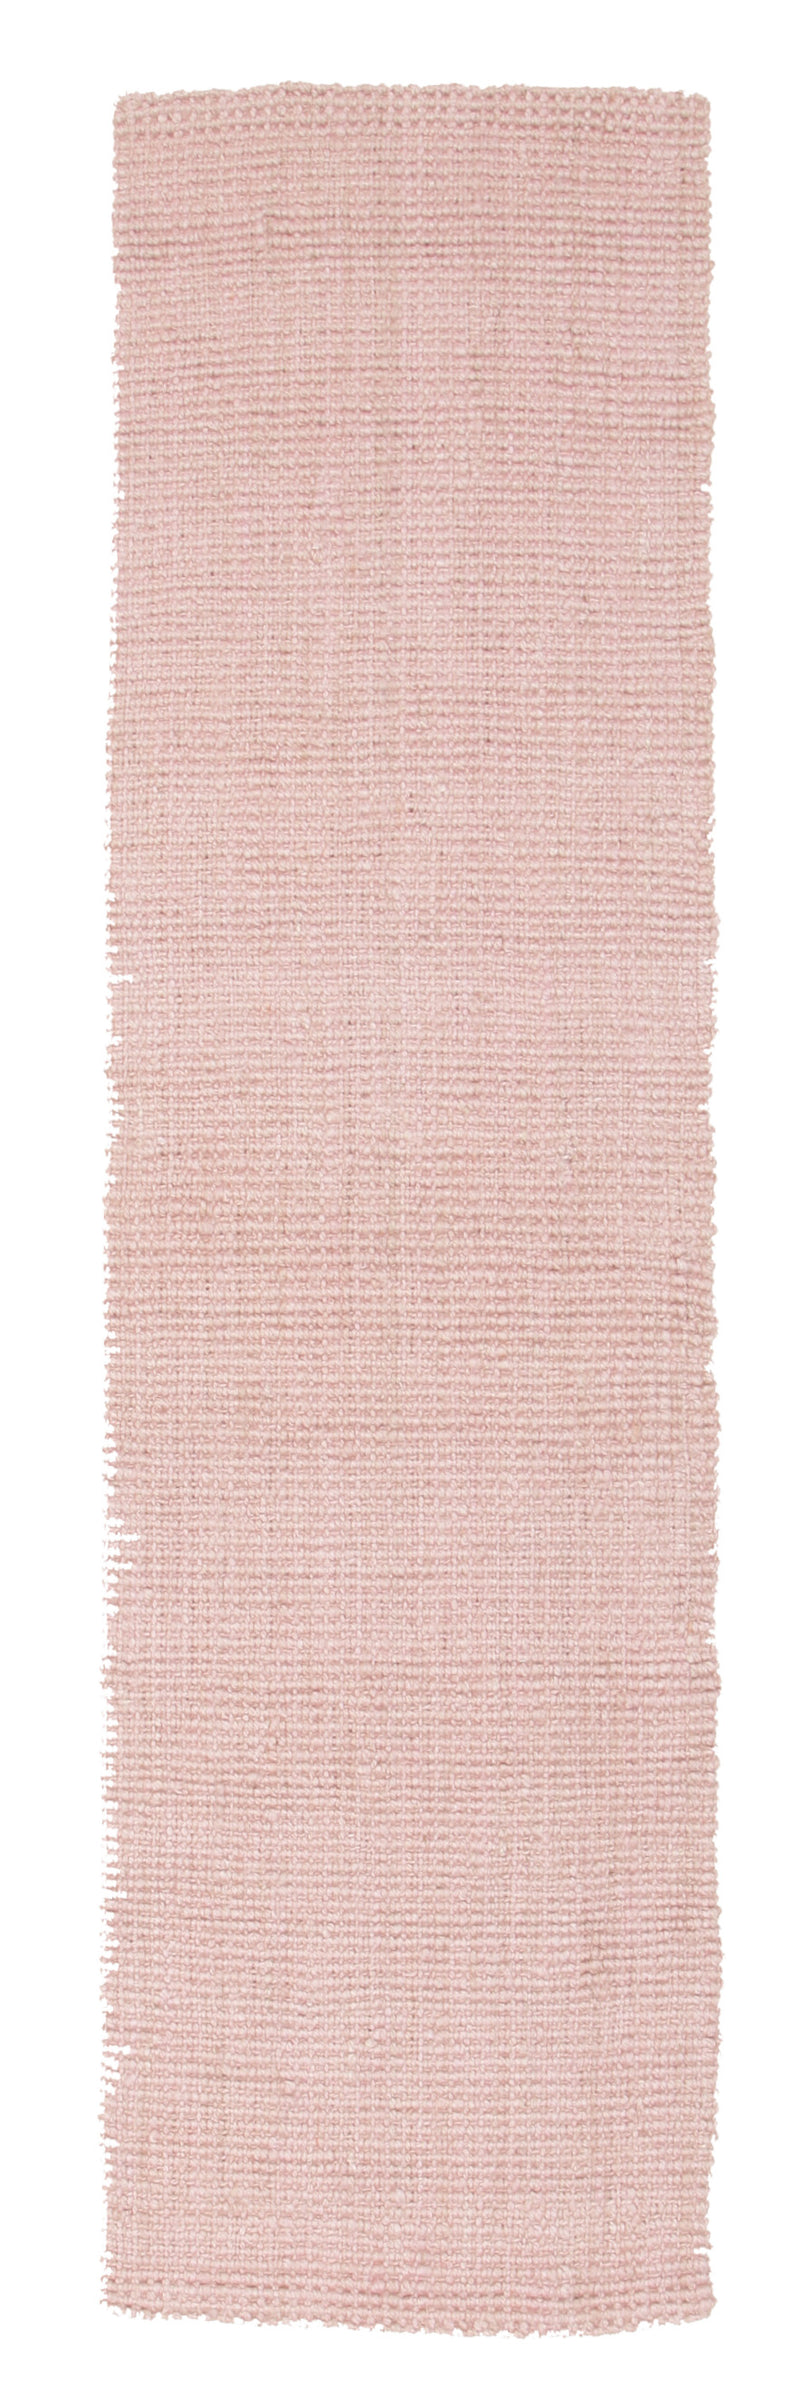 Organic Chunky Pink Runner Rug - MaddieBelle